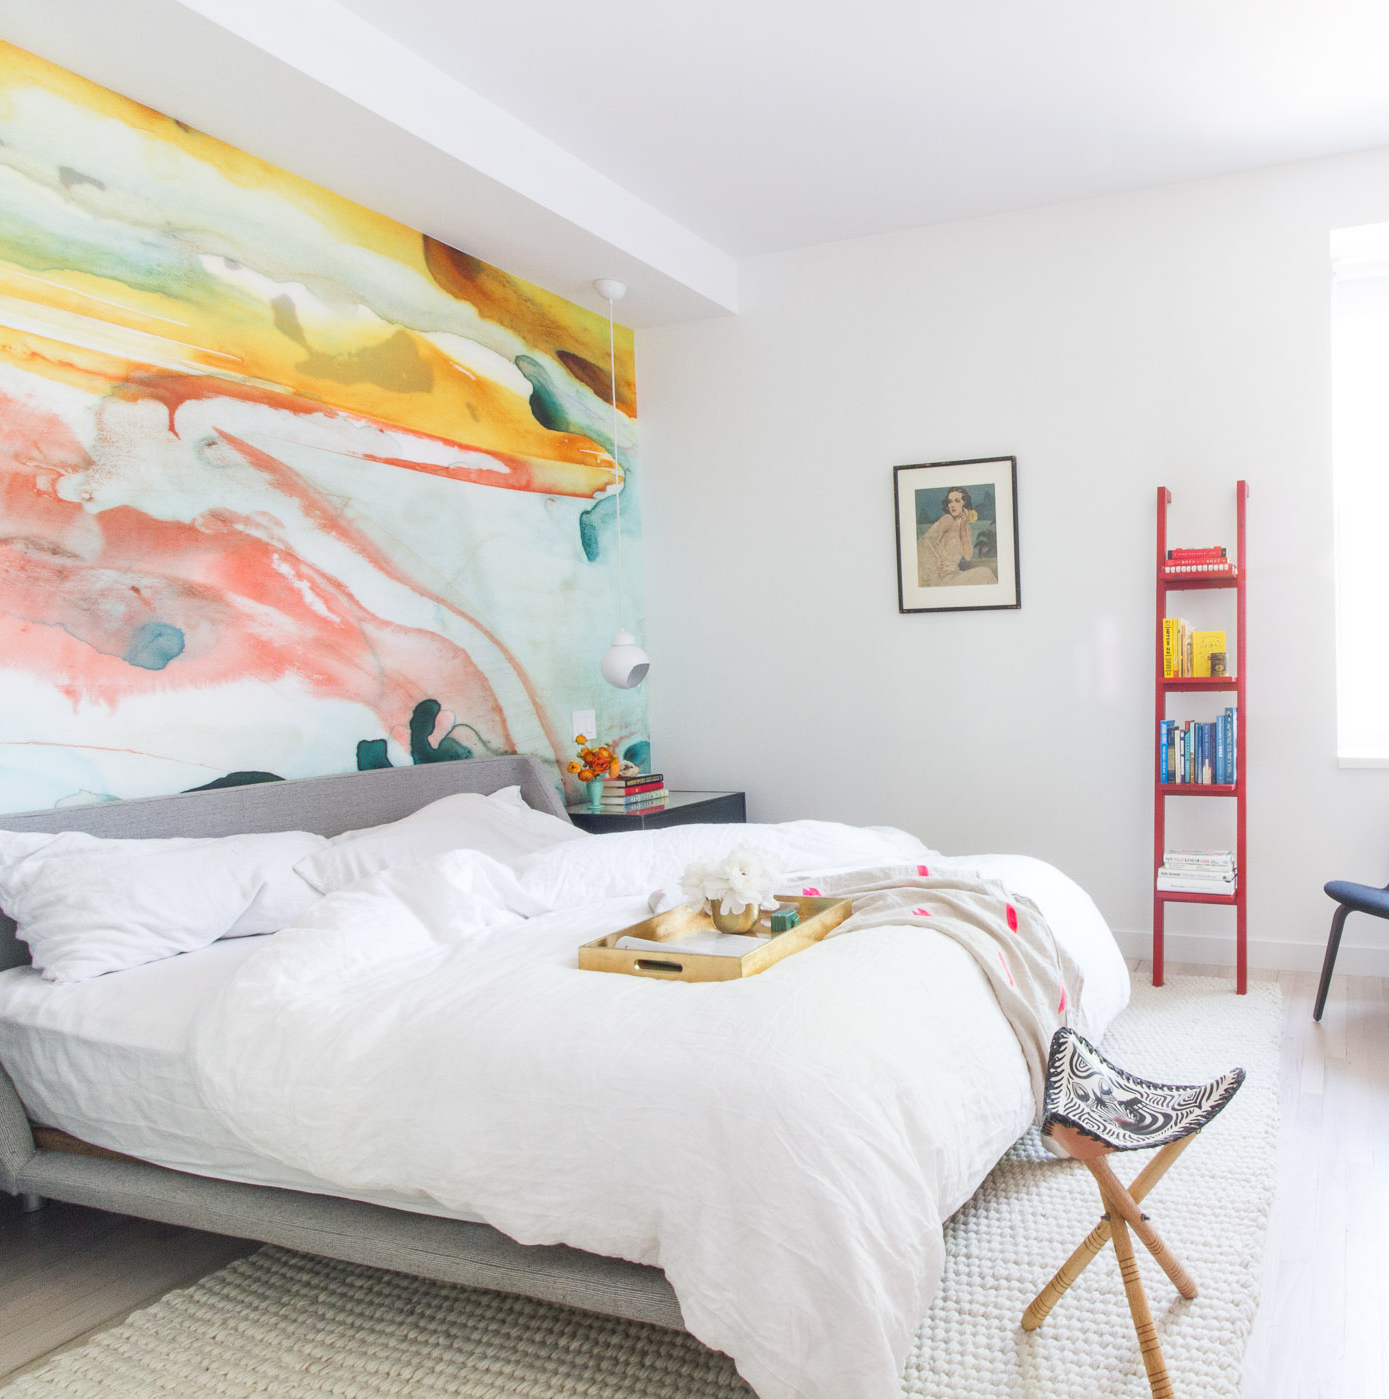 Bedroom with Pops of Color